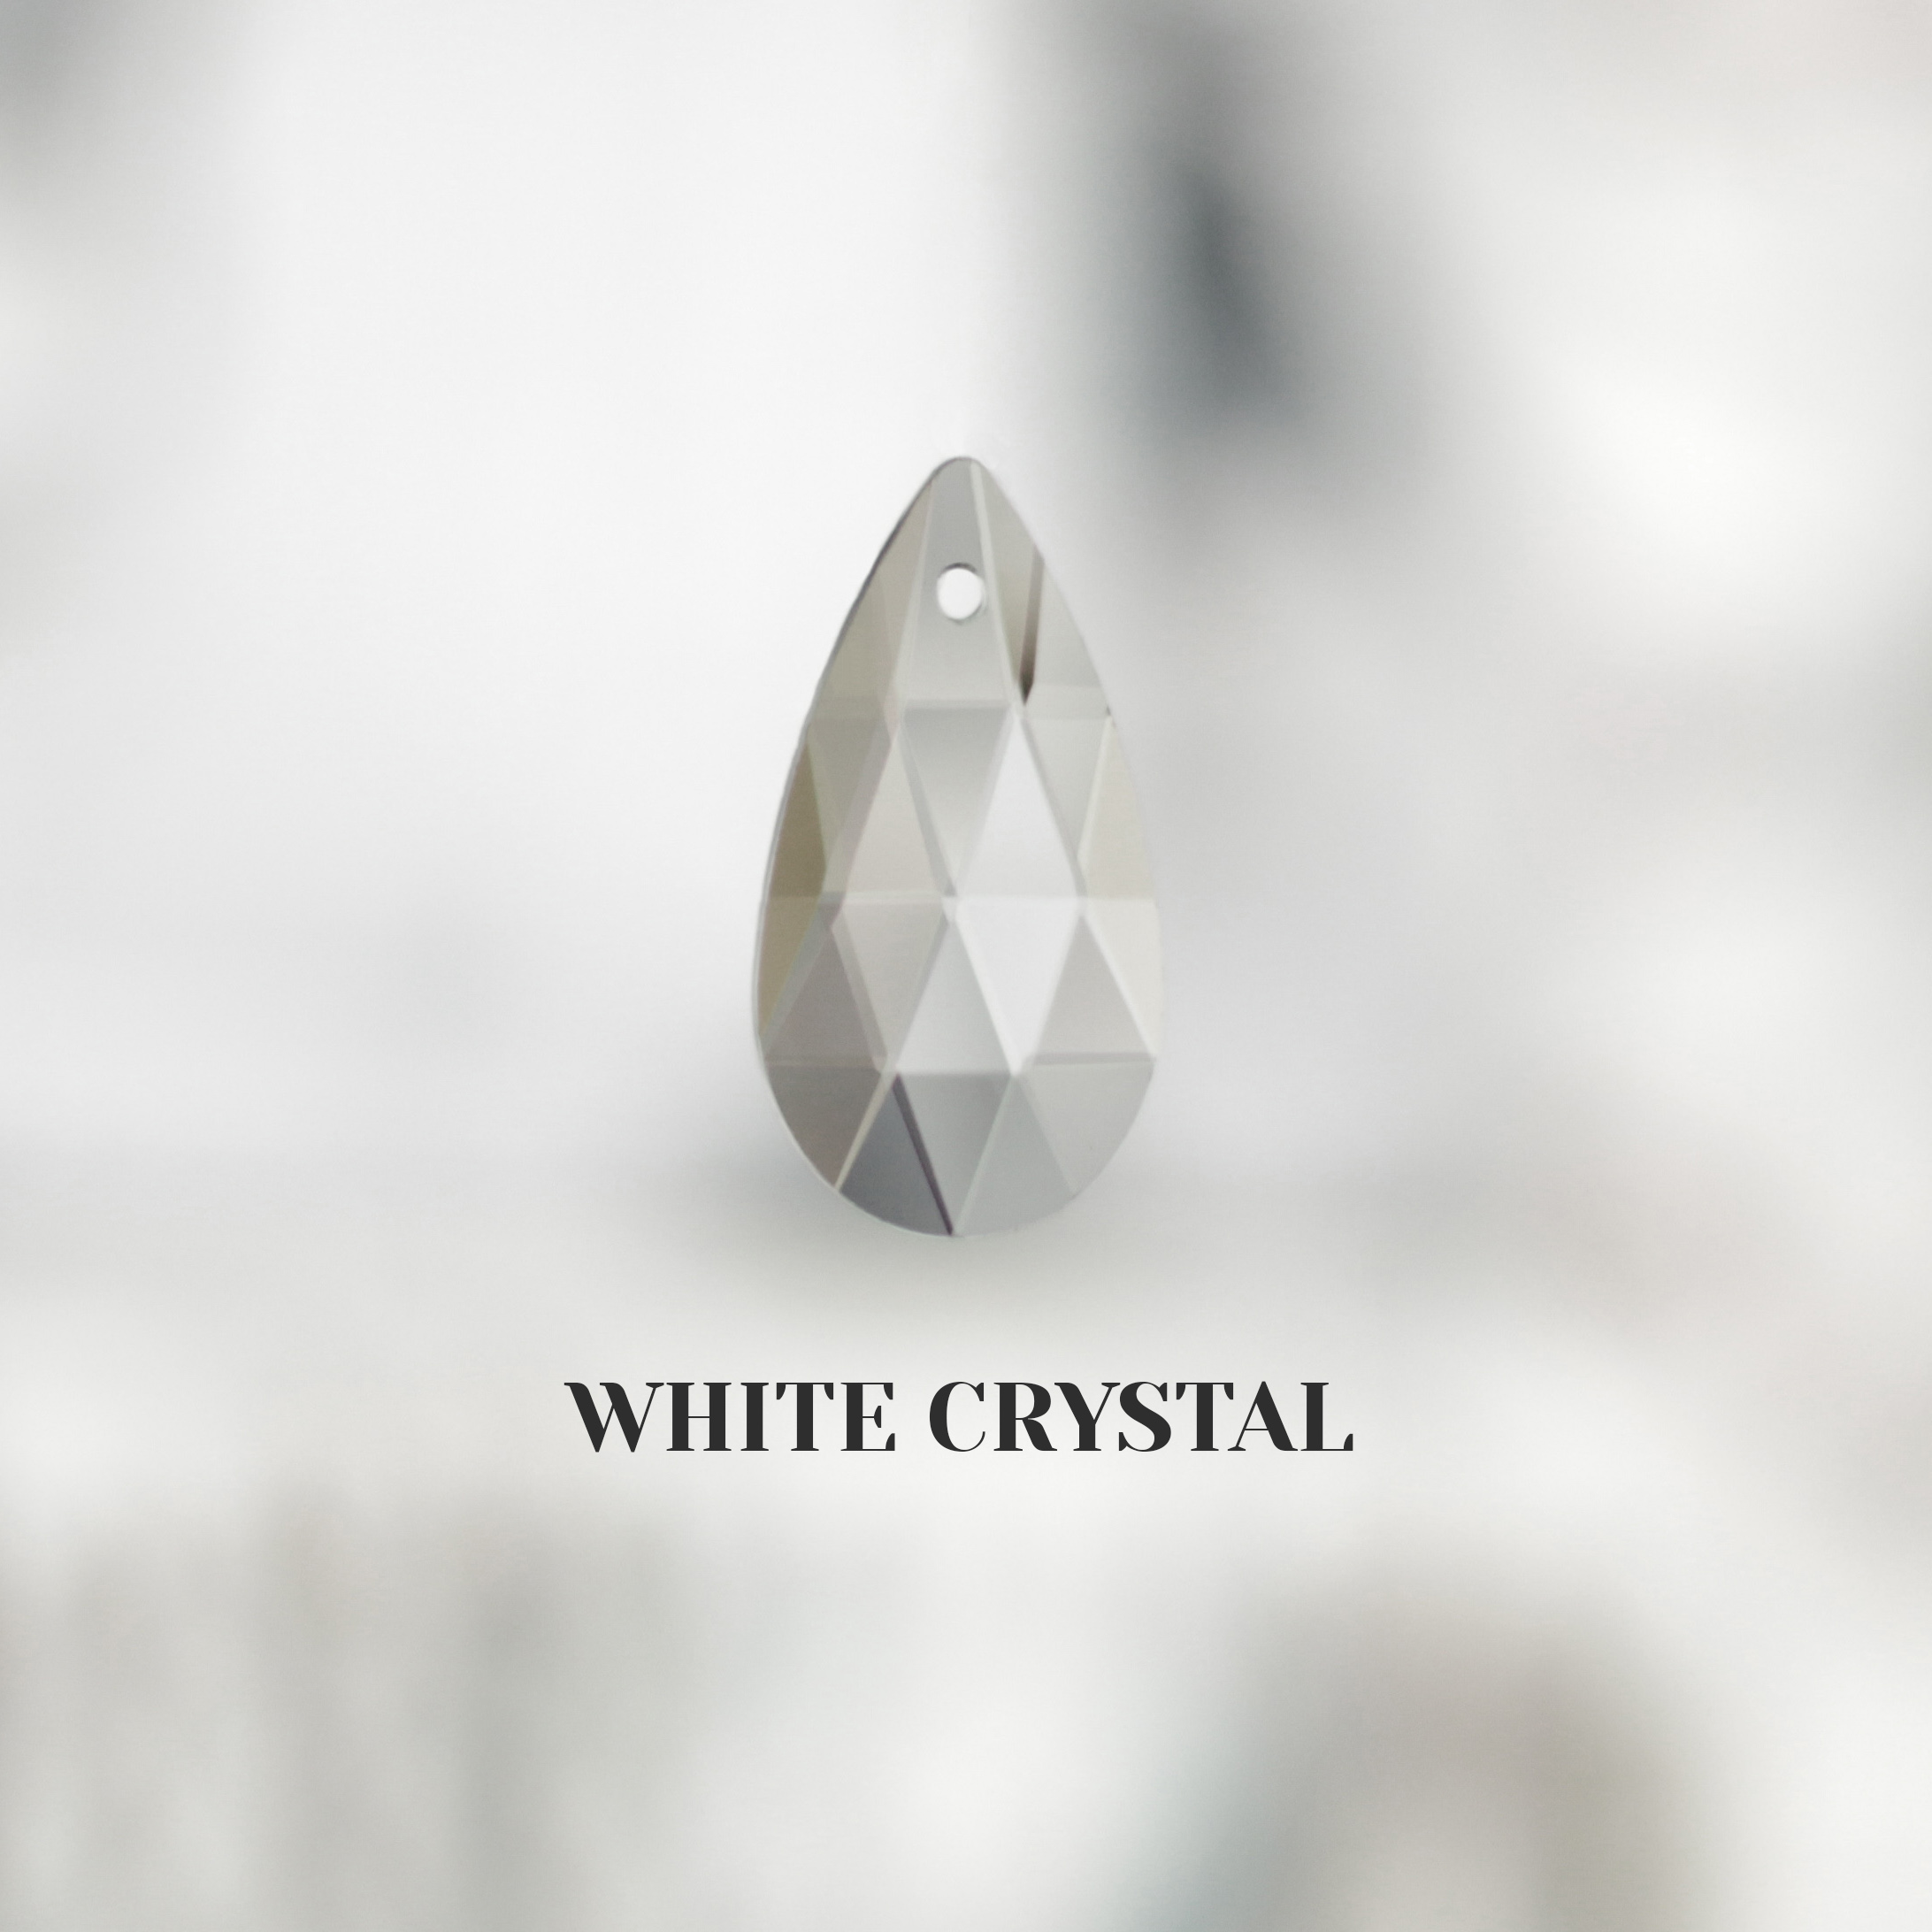 White Crystal